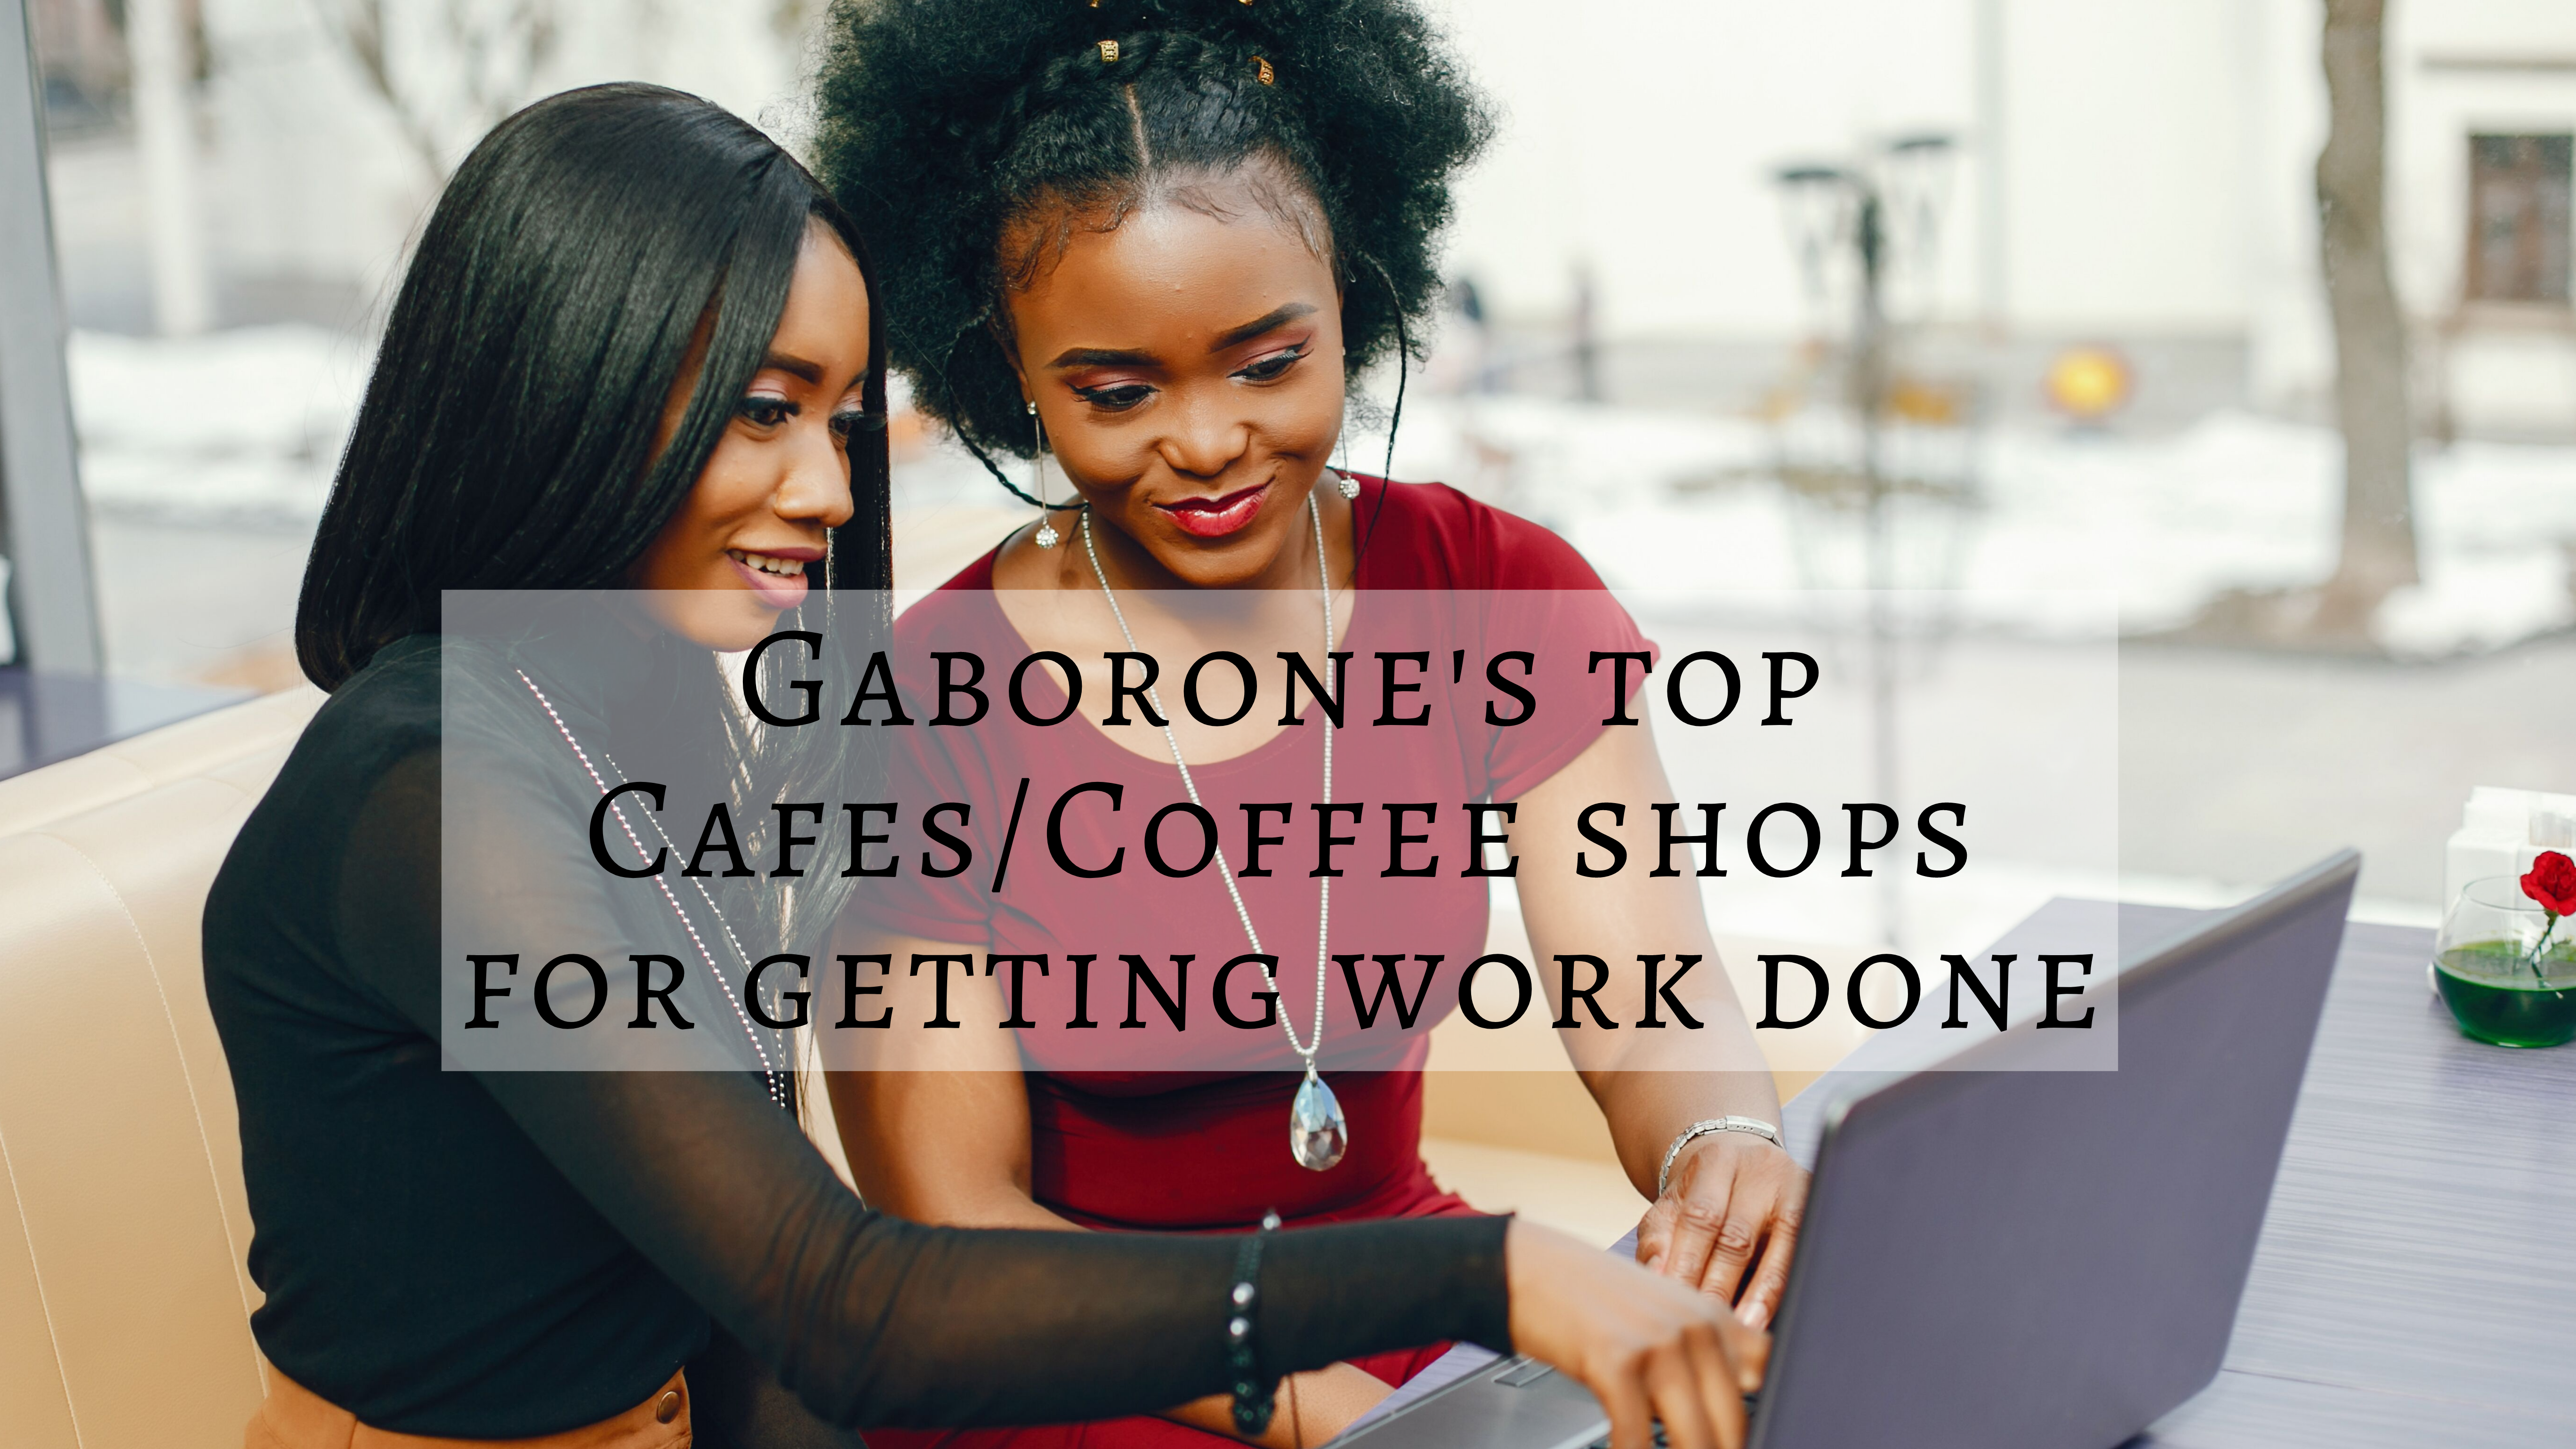 Gaborone's Top Cafes/Coffee Shops for getting work done 2019